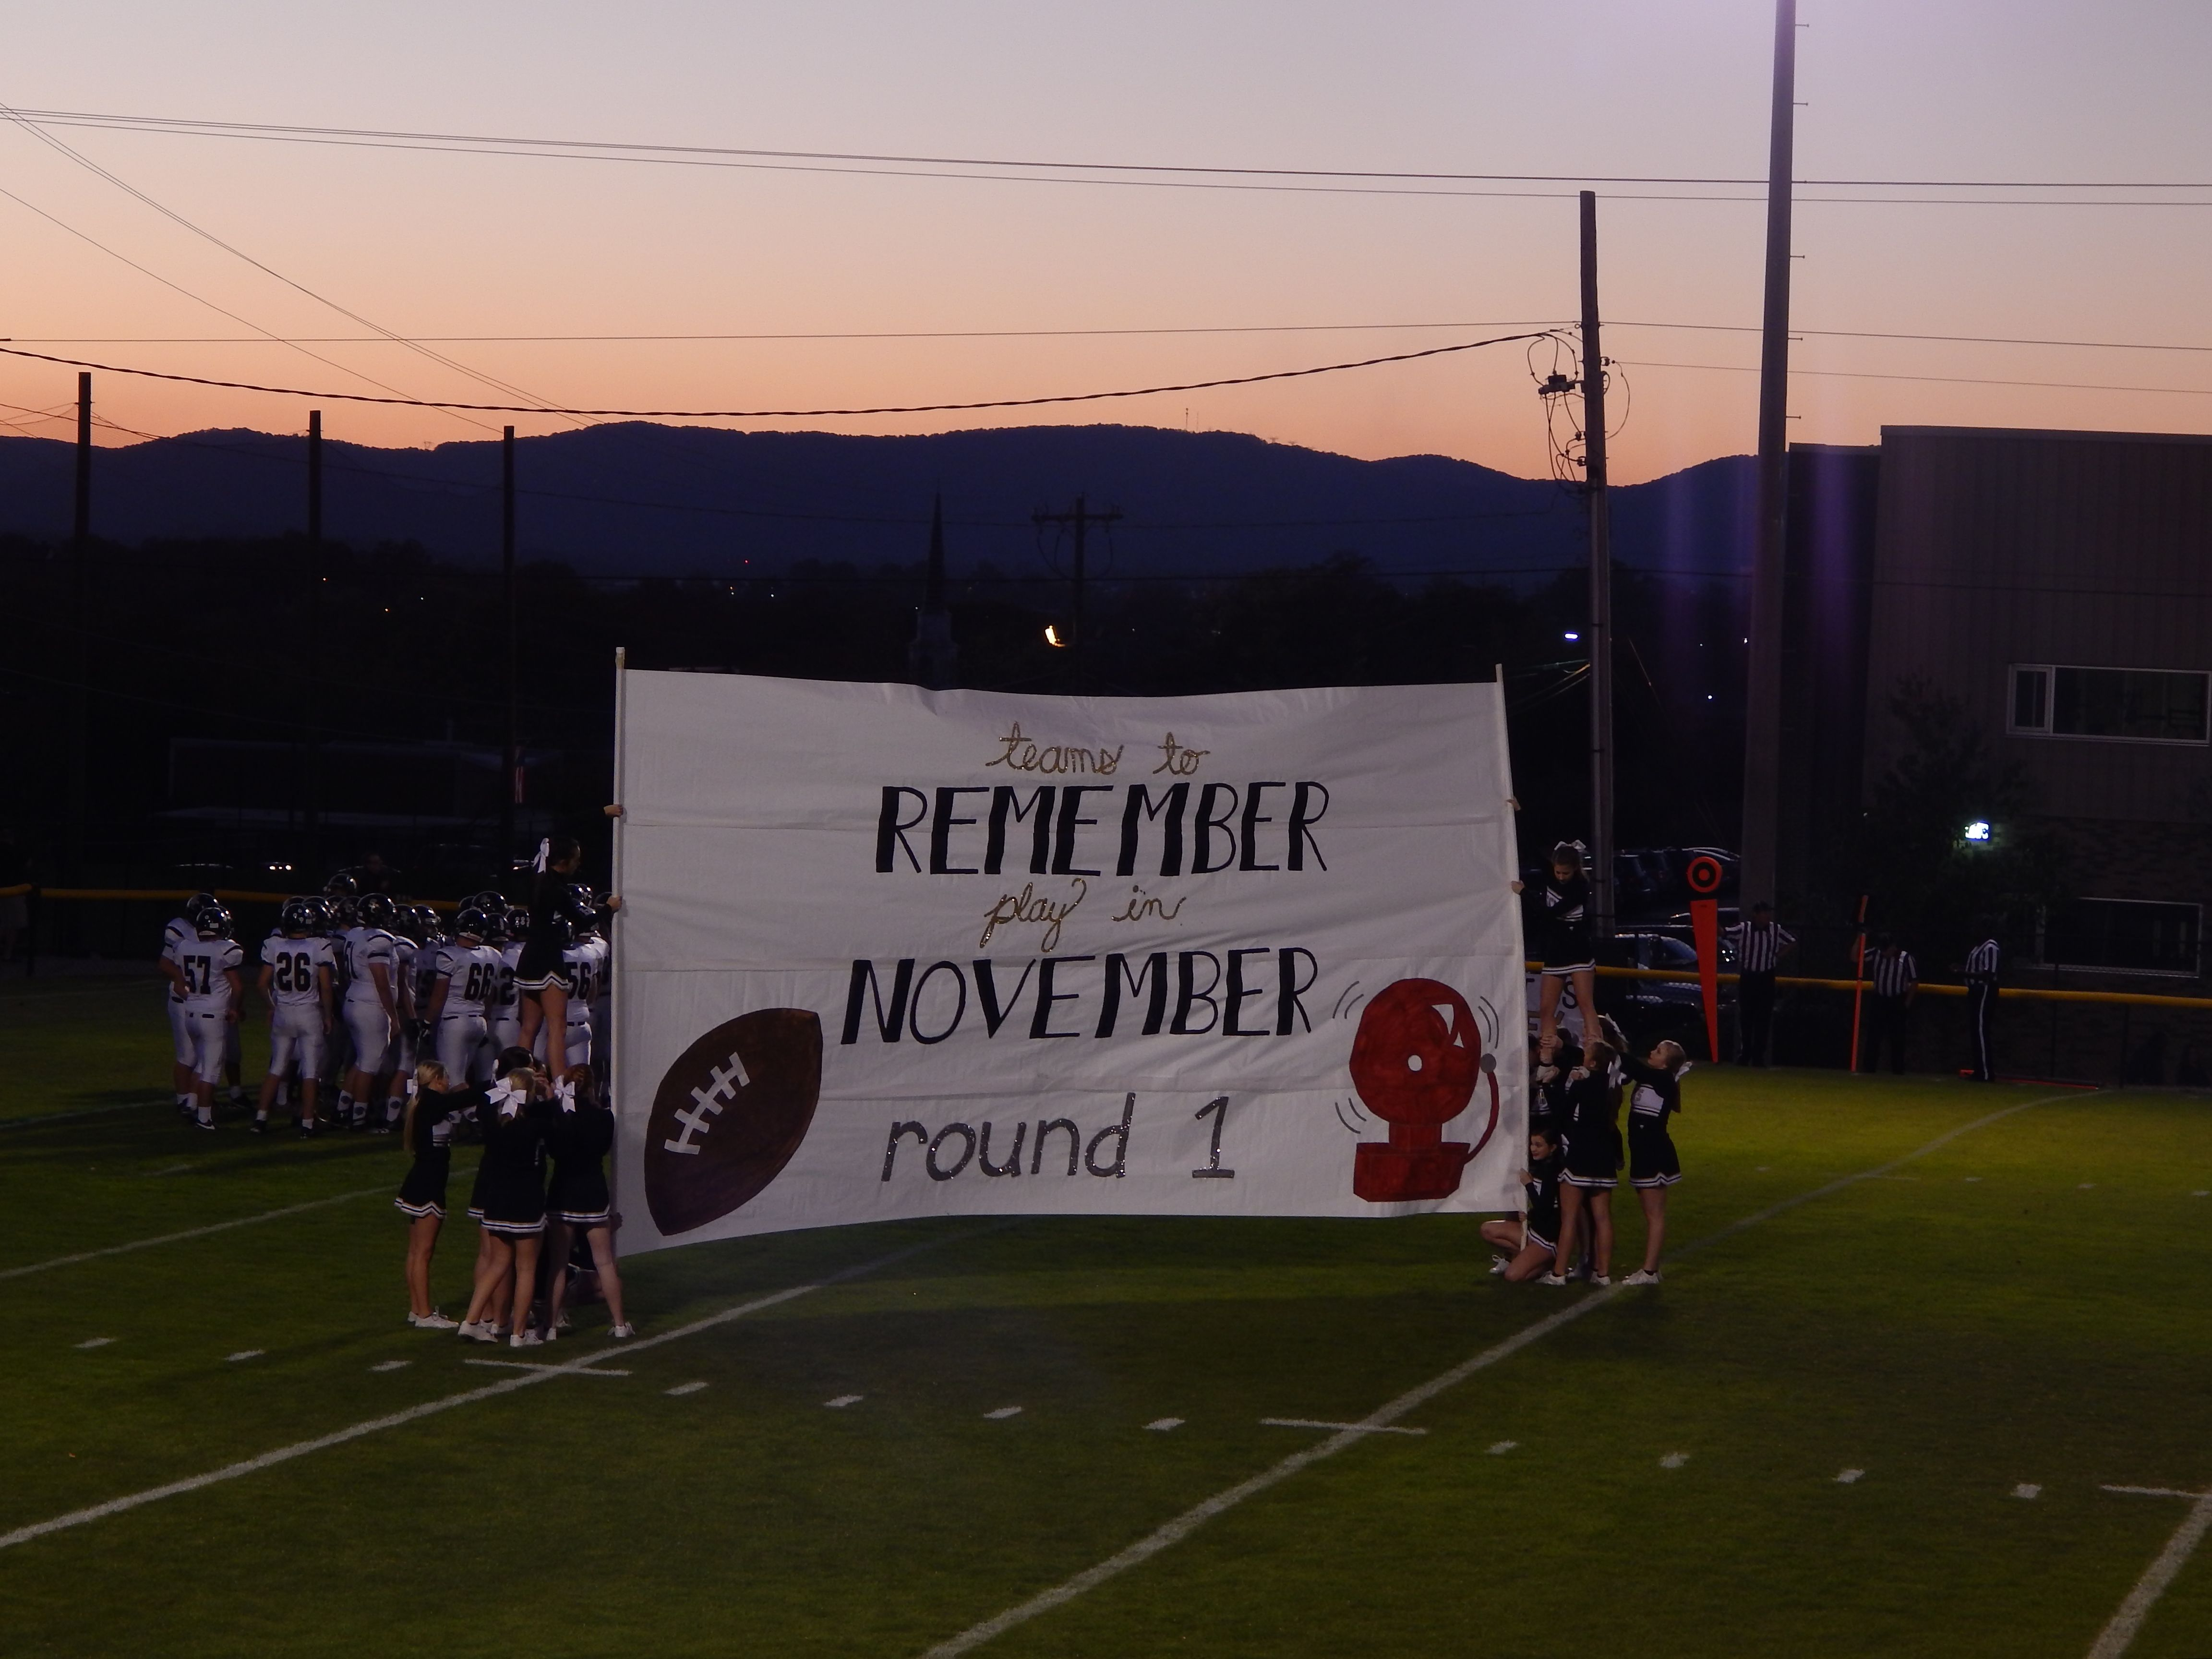 Schs At Notre Dame Chattanooga Tn 11 04 2016 Teams To Remember In November Round 1 Football Cheer Cheer Signs Football Banner